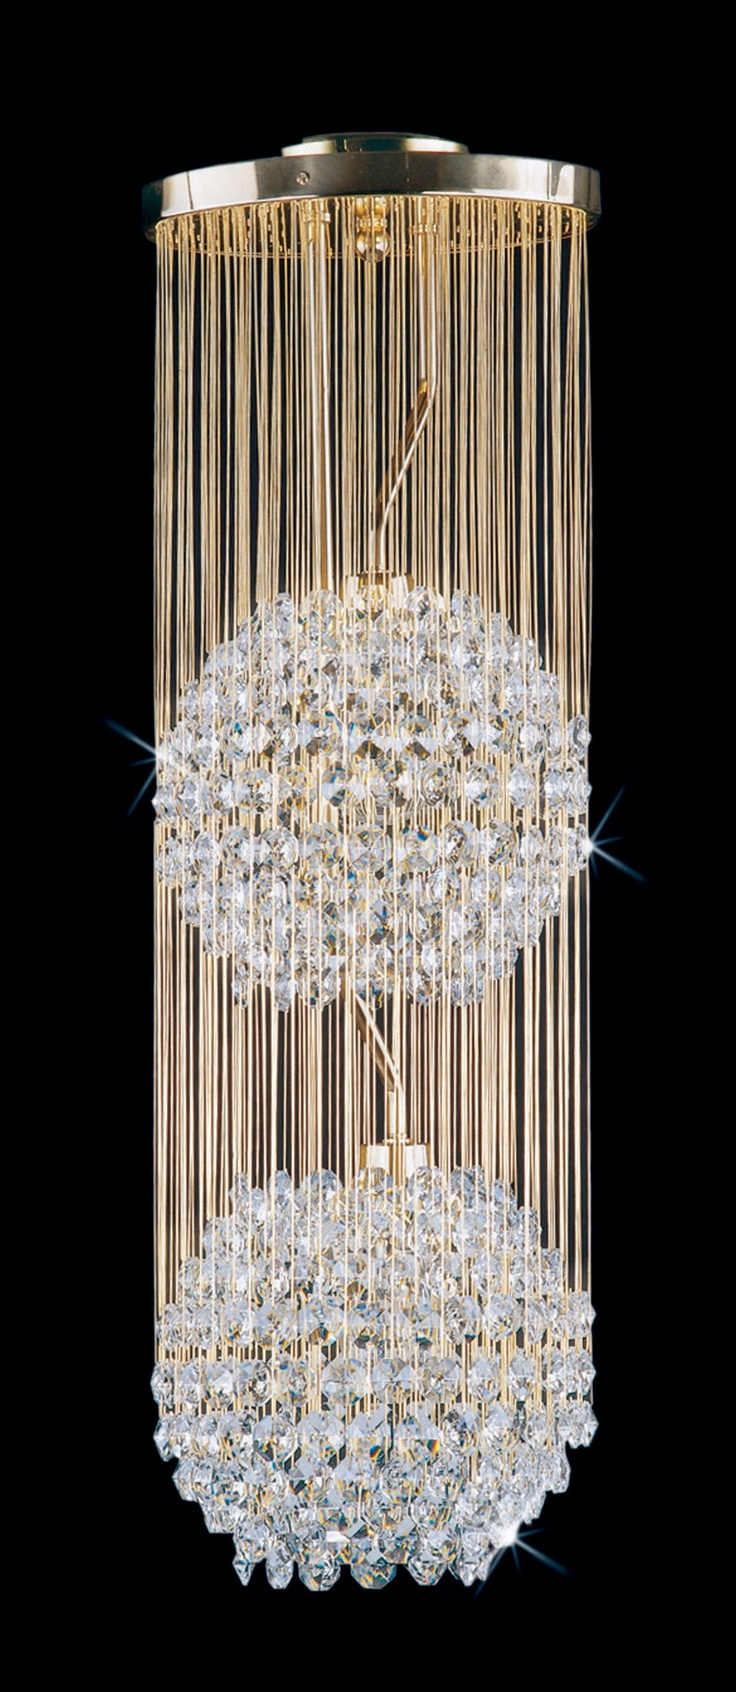 Classical Chandeliers Stock Wide Range Of Traditional And Modern Chandelier Lighting For Sale We Offer Installation Services